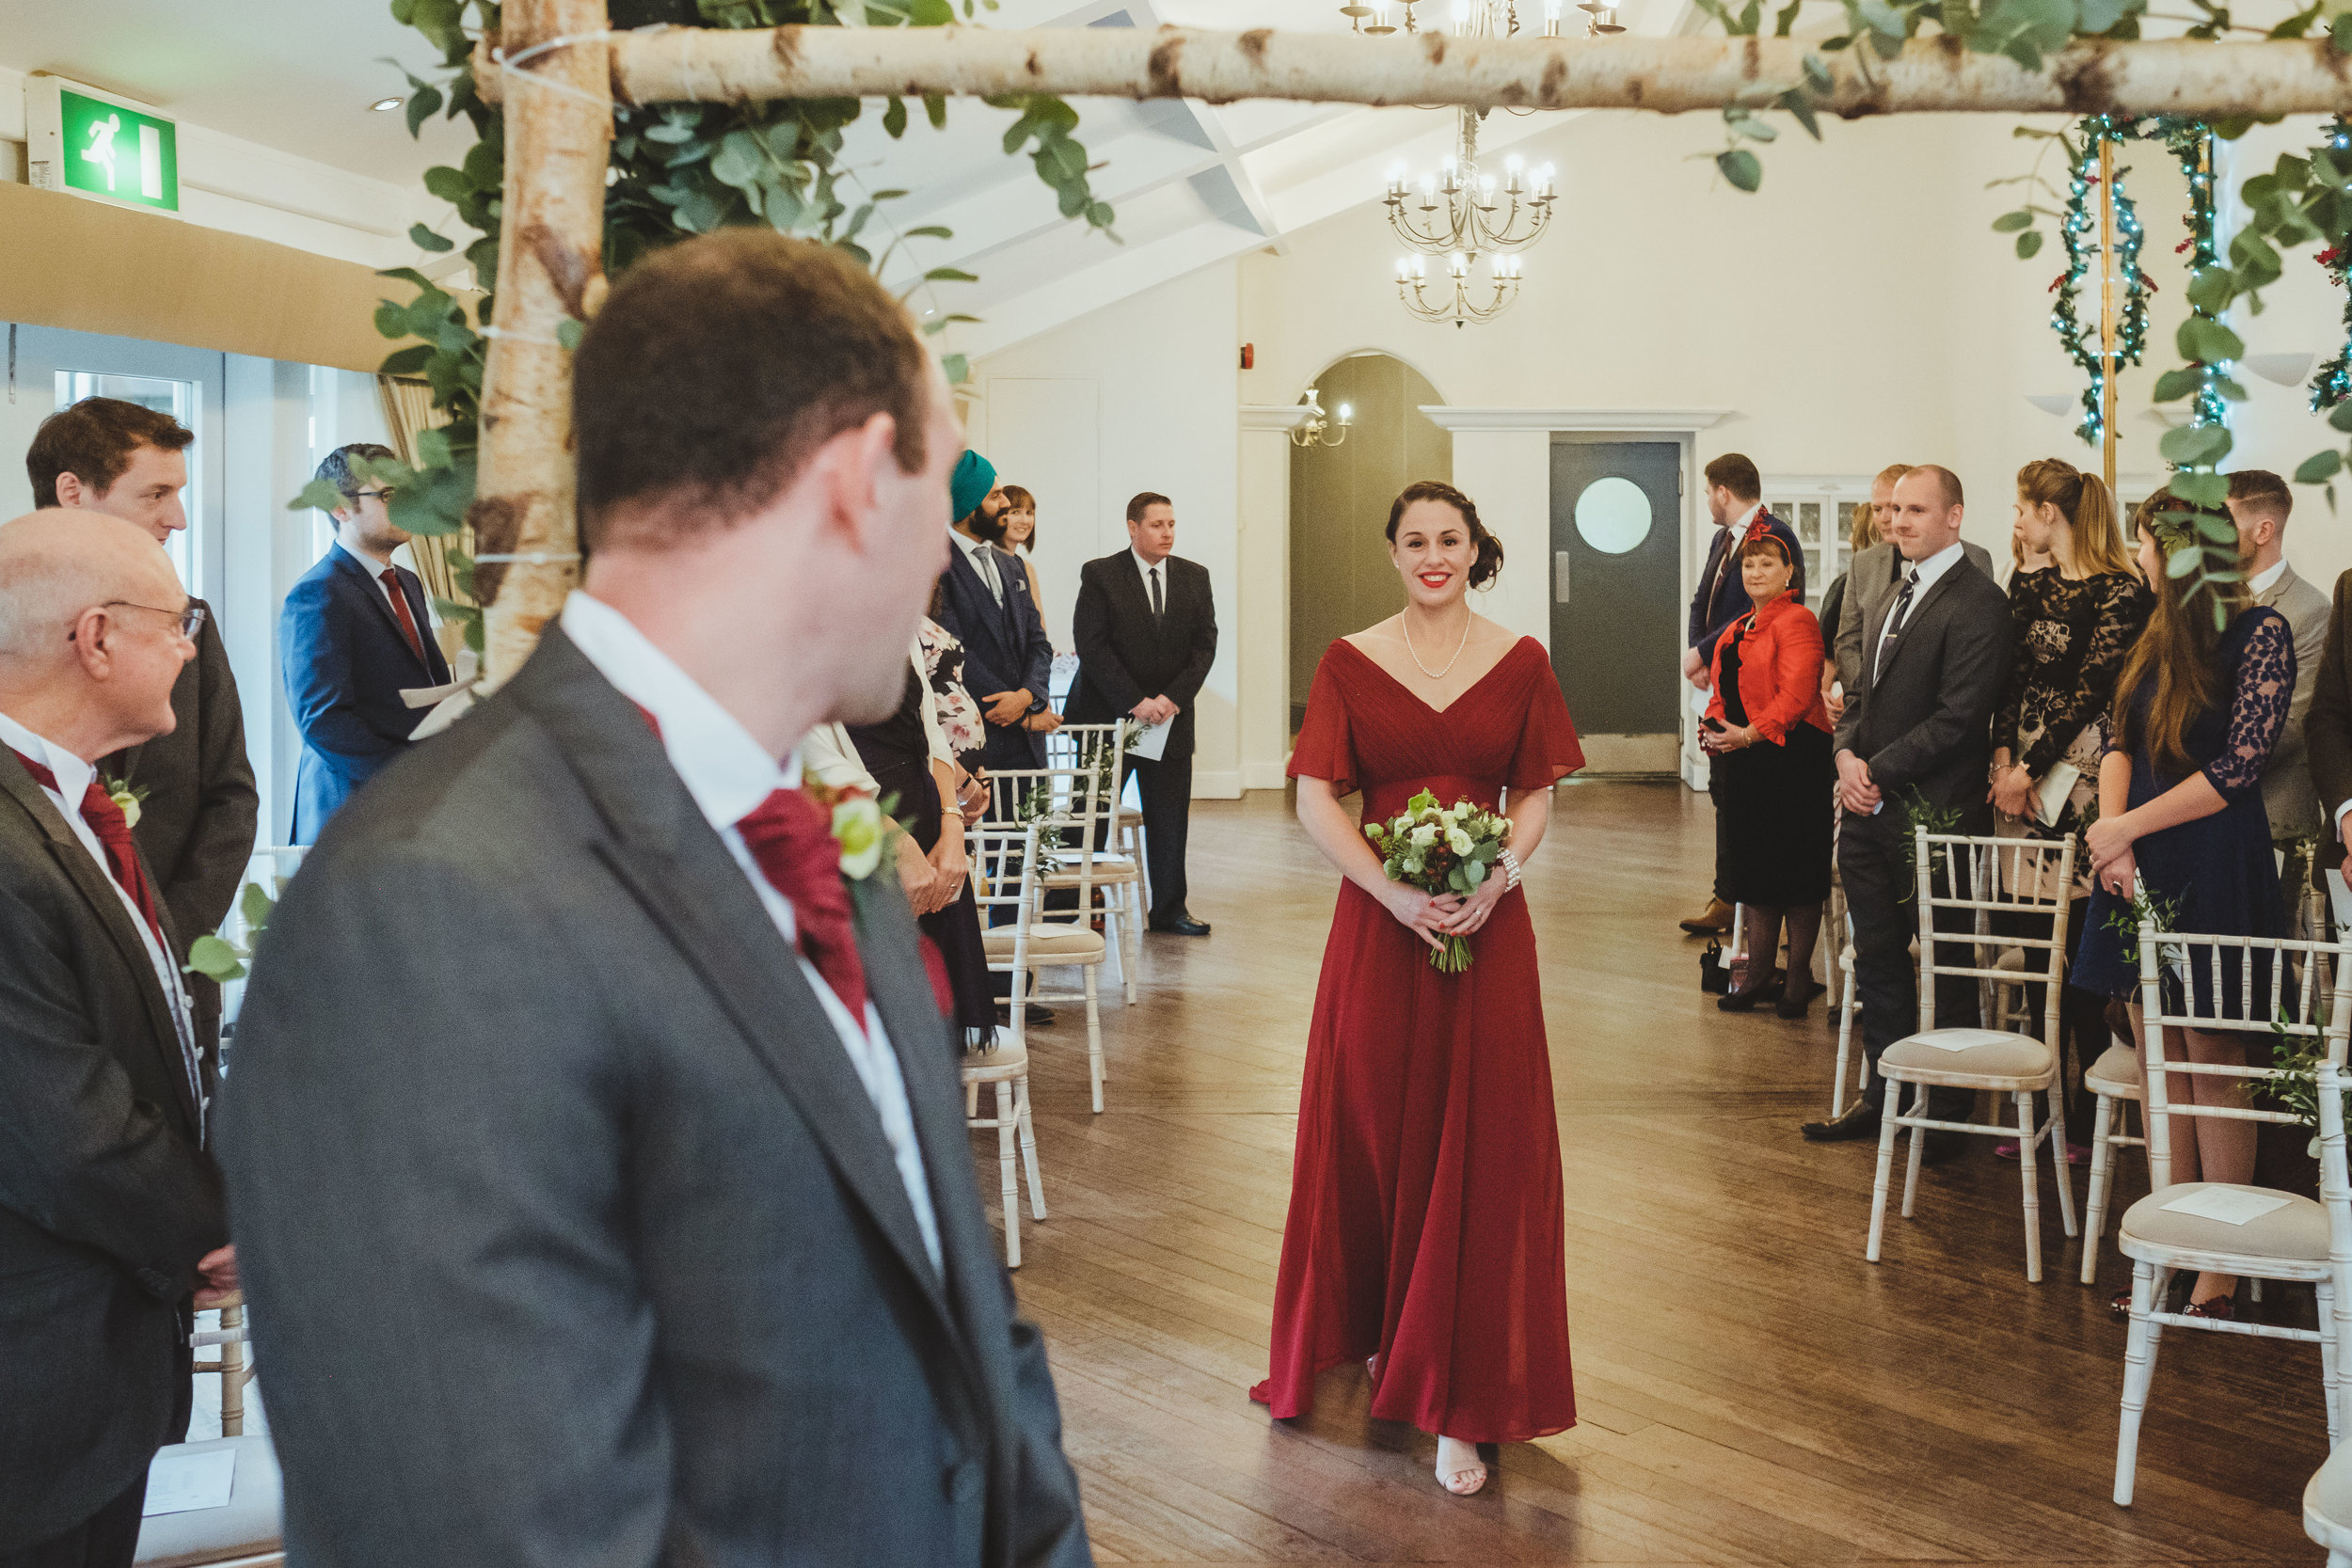 Groom watches bridesmaid wearing red dress walking down aisle